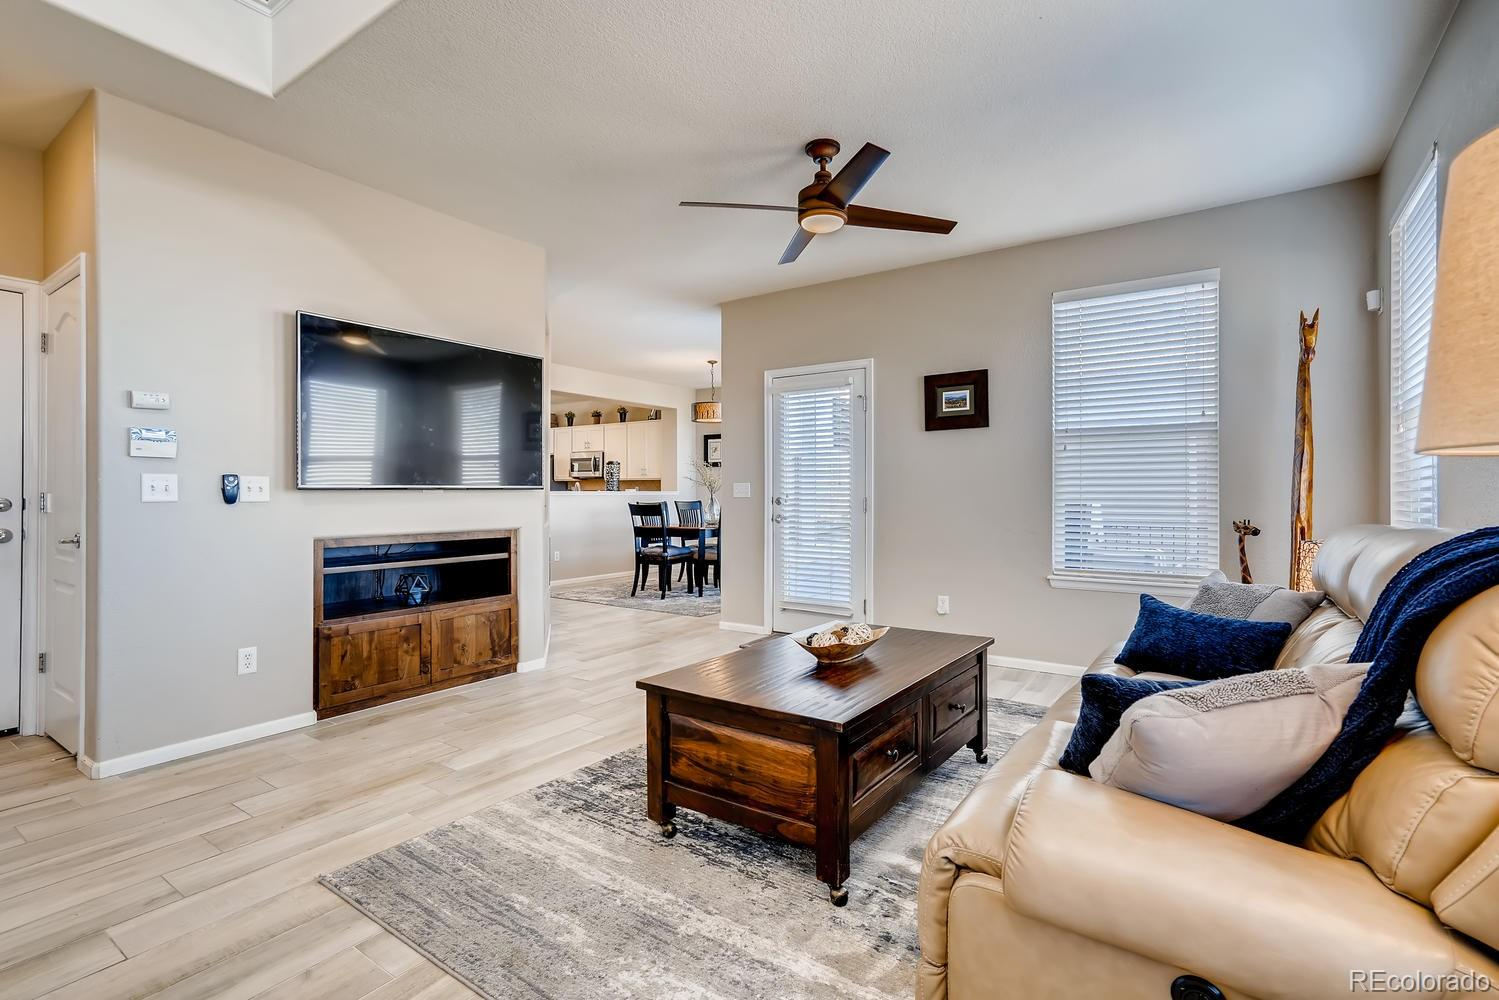 MLS# 8227370 - 7 - 10562 Atwood Circle, Highlands Ranch, CO 80130